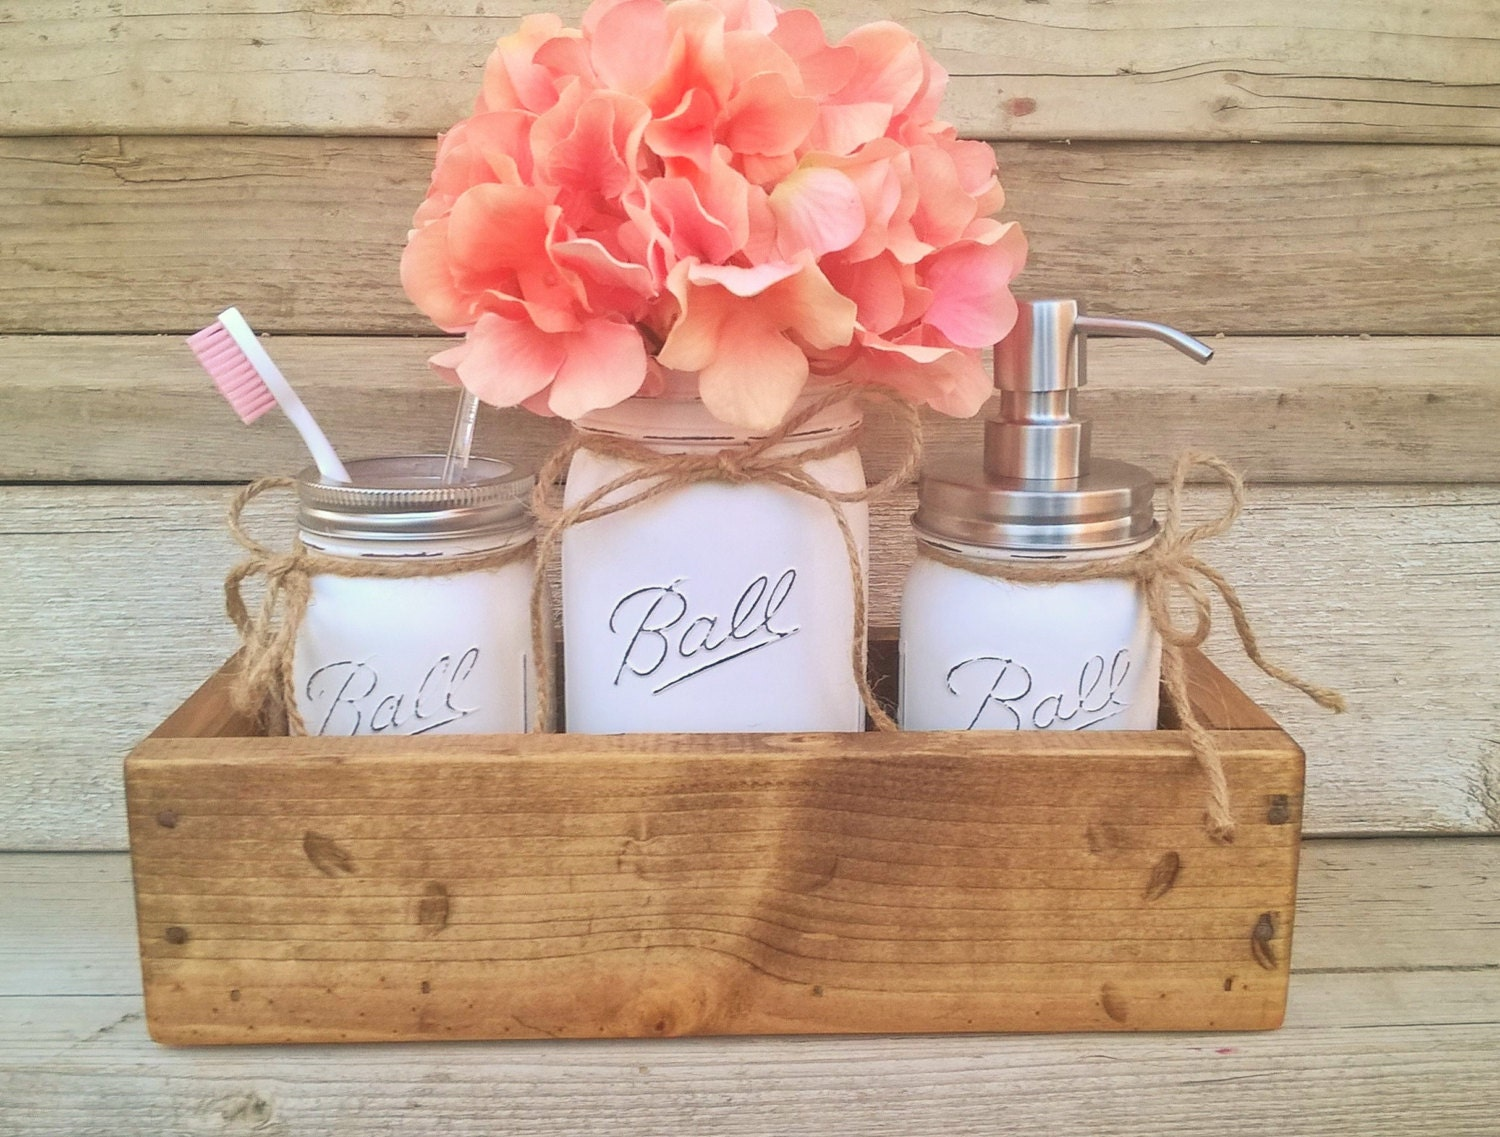 Mason jar planter box organizer bathroom decor mason jar for Bathroom counter decor